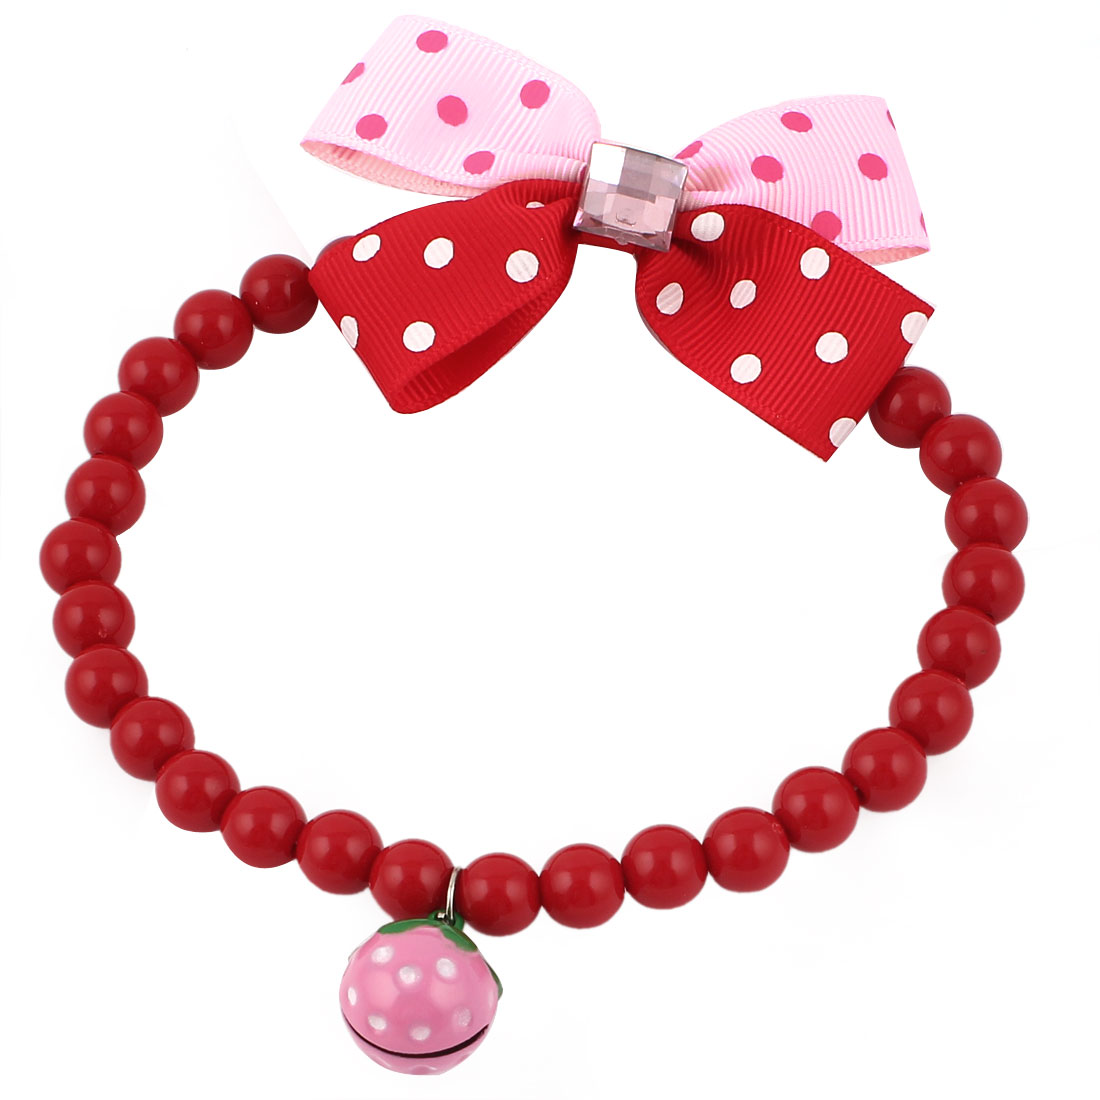 Metal Bell Pendant Bowtie Accent Pet Dog Plastic Beads Collar Necklace Red Pink L